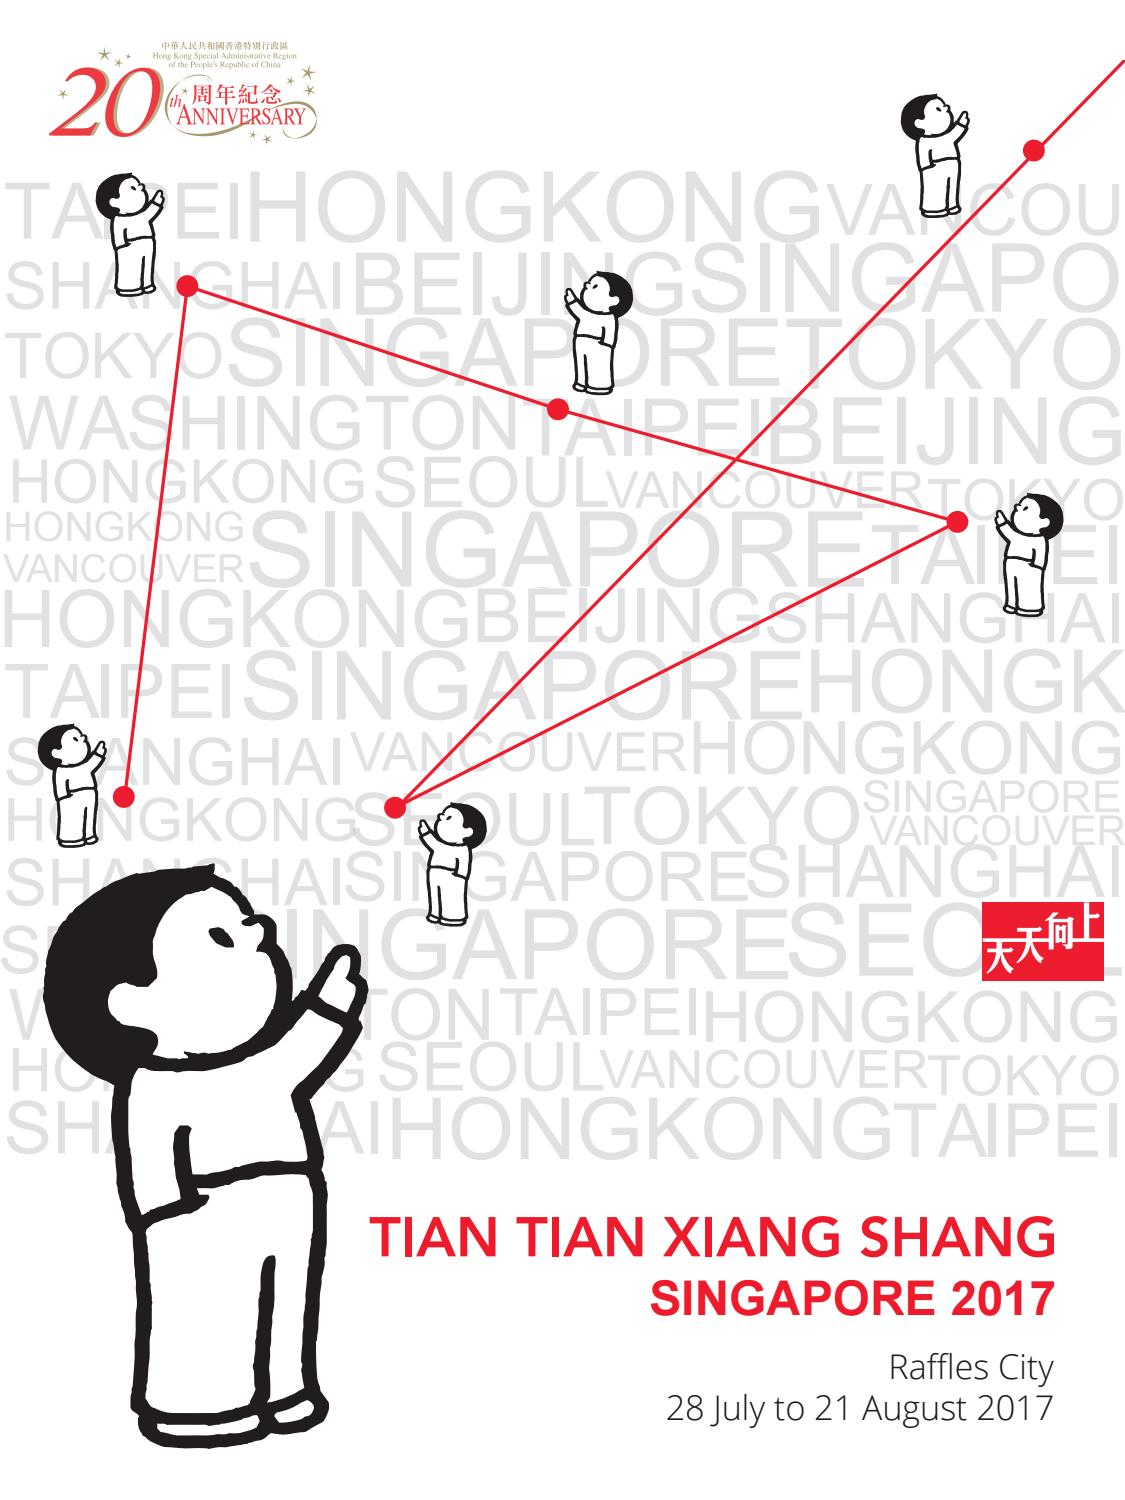 Tian Xiang Shang Singapore 2017 Exhibition Booklet By Zuni How To Make A Kite Diagram Pictures 1 Apps Directories Icosahedron Issuu